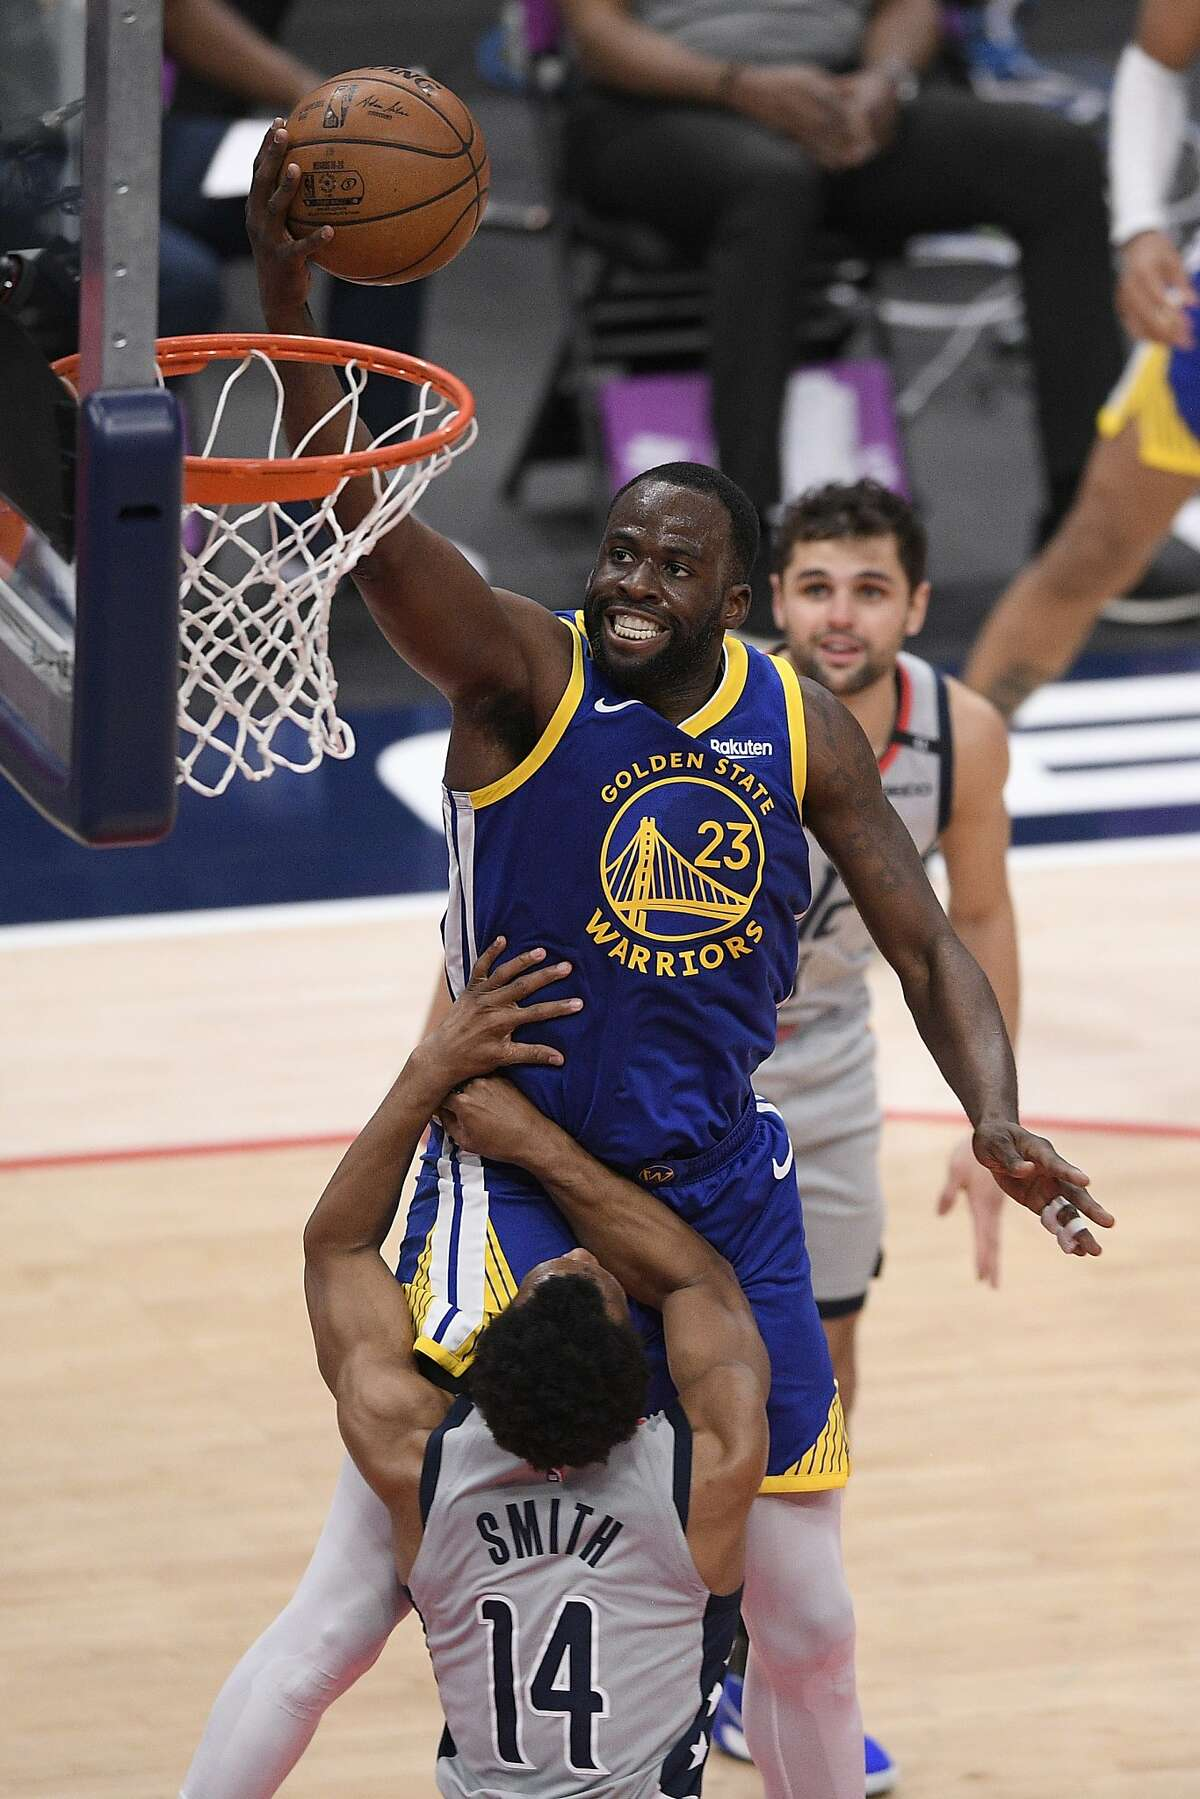 Golden State Warriors forward Draymond Green (23) goes to the basket against Washington Wizards guard Ish Smith (14) during the second half of an NBA basketball game, Wednesday, April 21, 2021, in Washington. (AP Photo/Nick Wass)